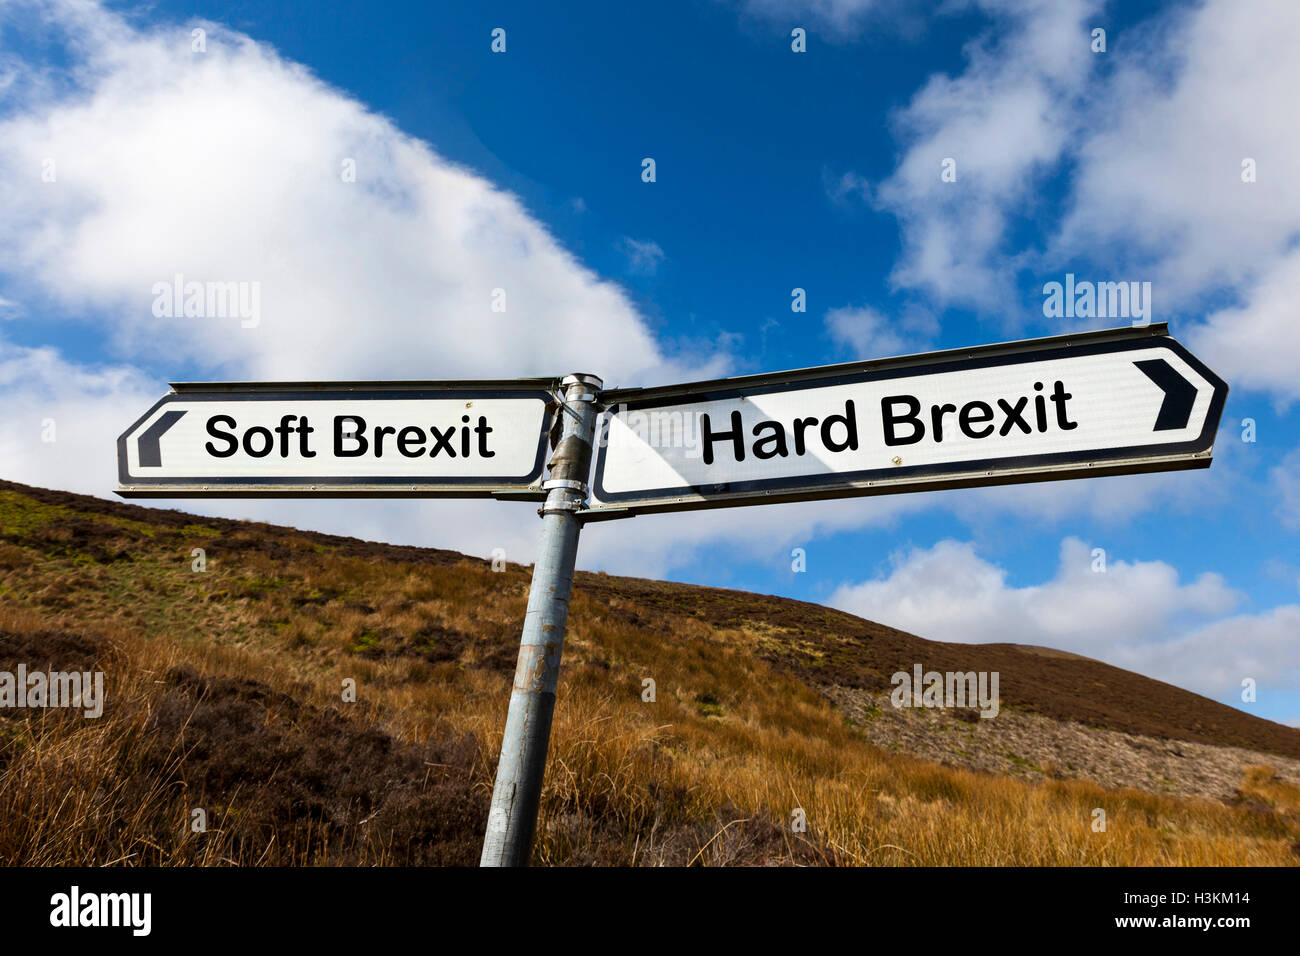 Soft brexit hard brexit GB UK England Article 50 European leaving Europe jurisdiction ruling options choice choices - Stock Image